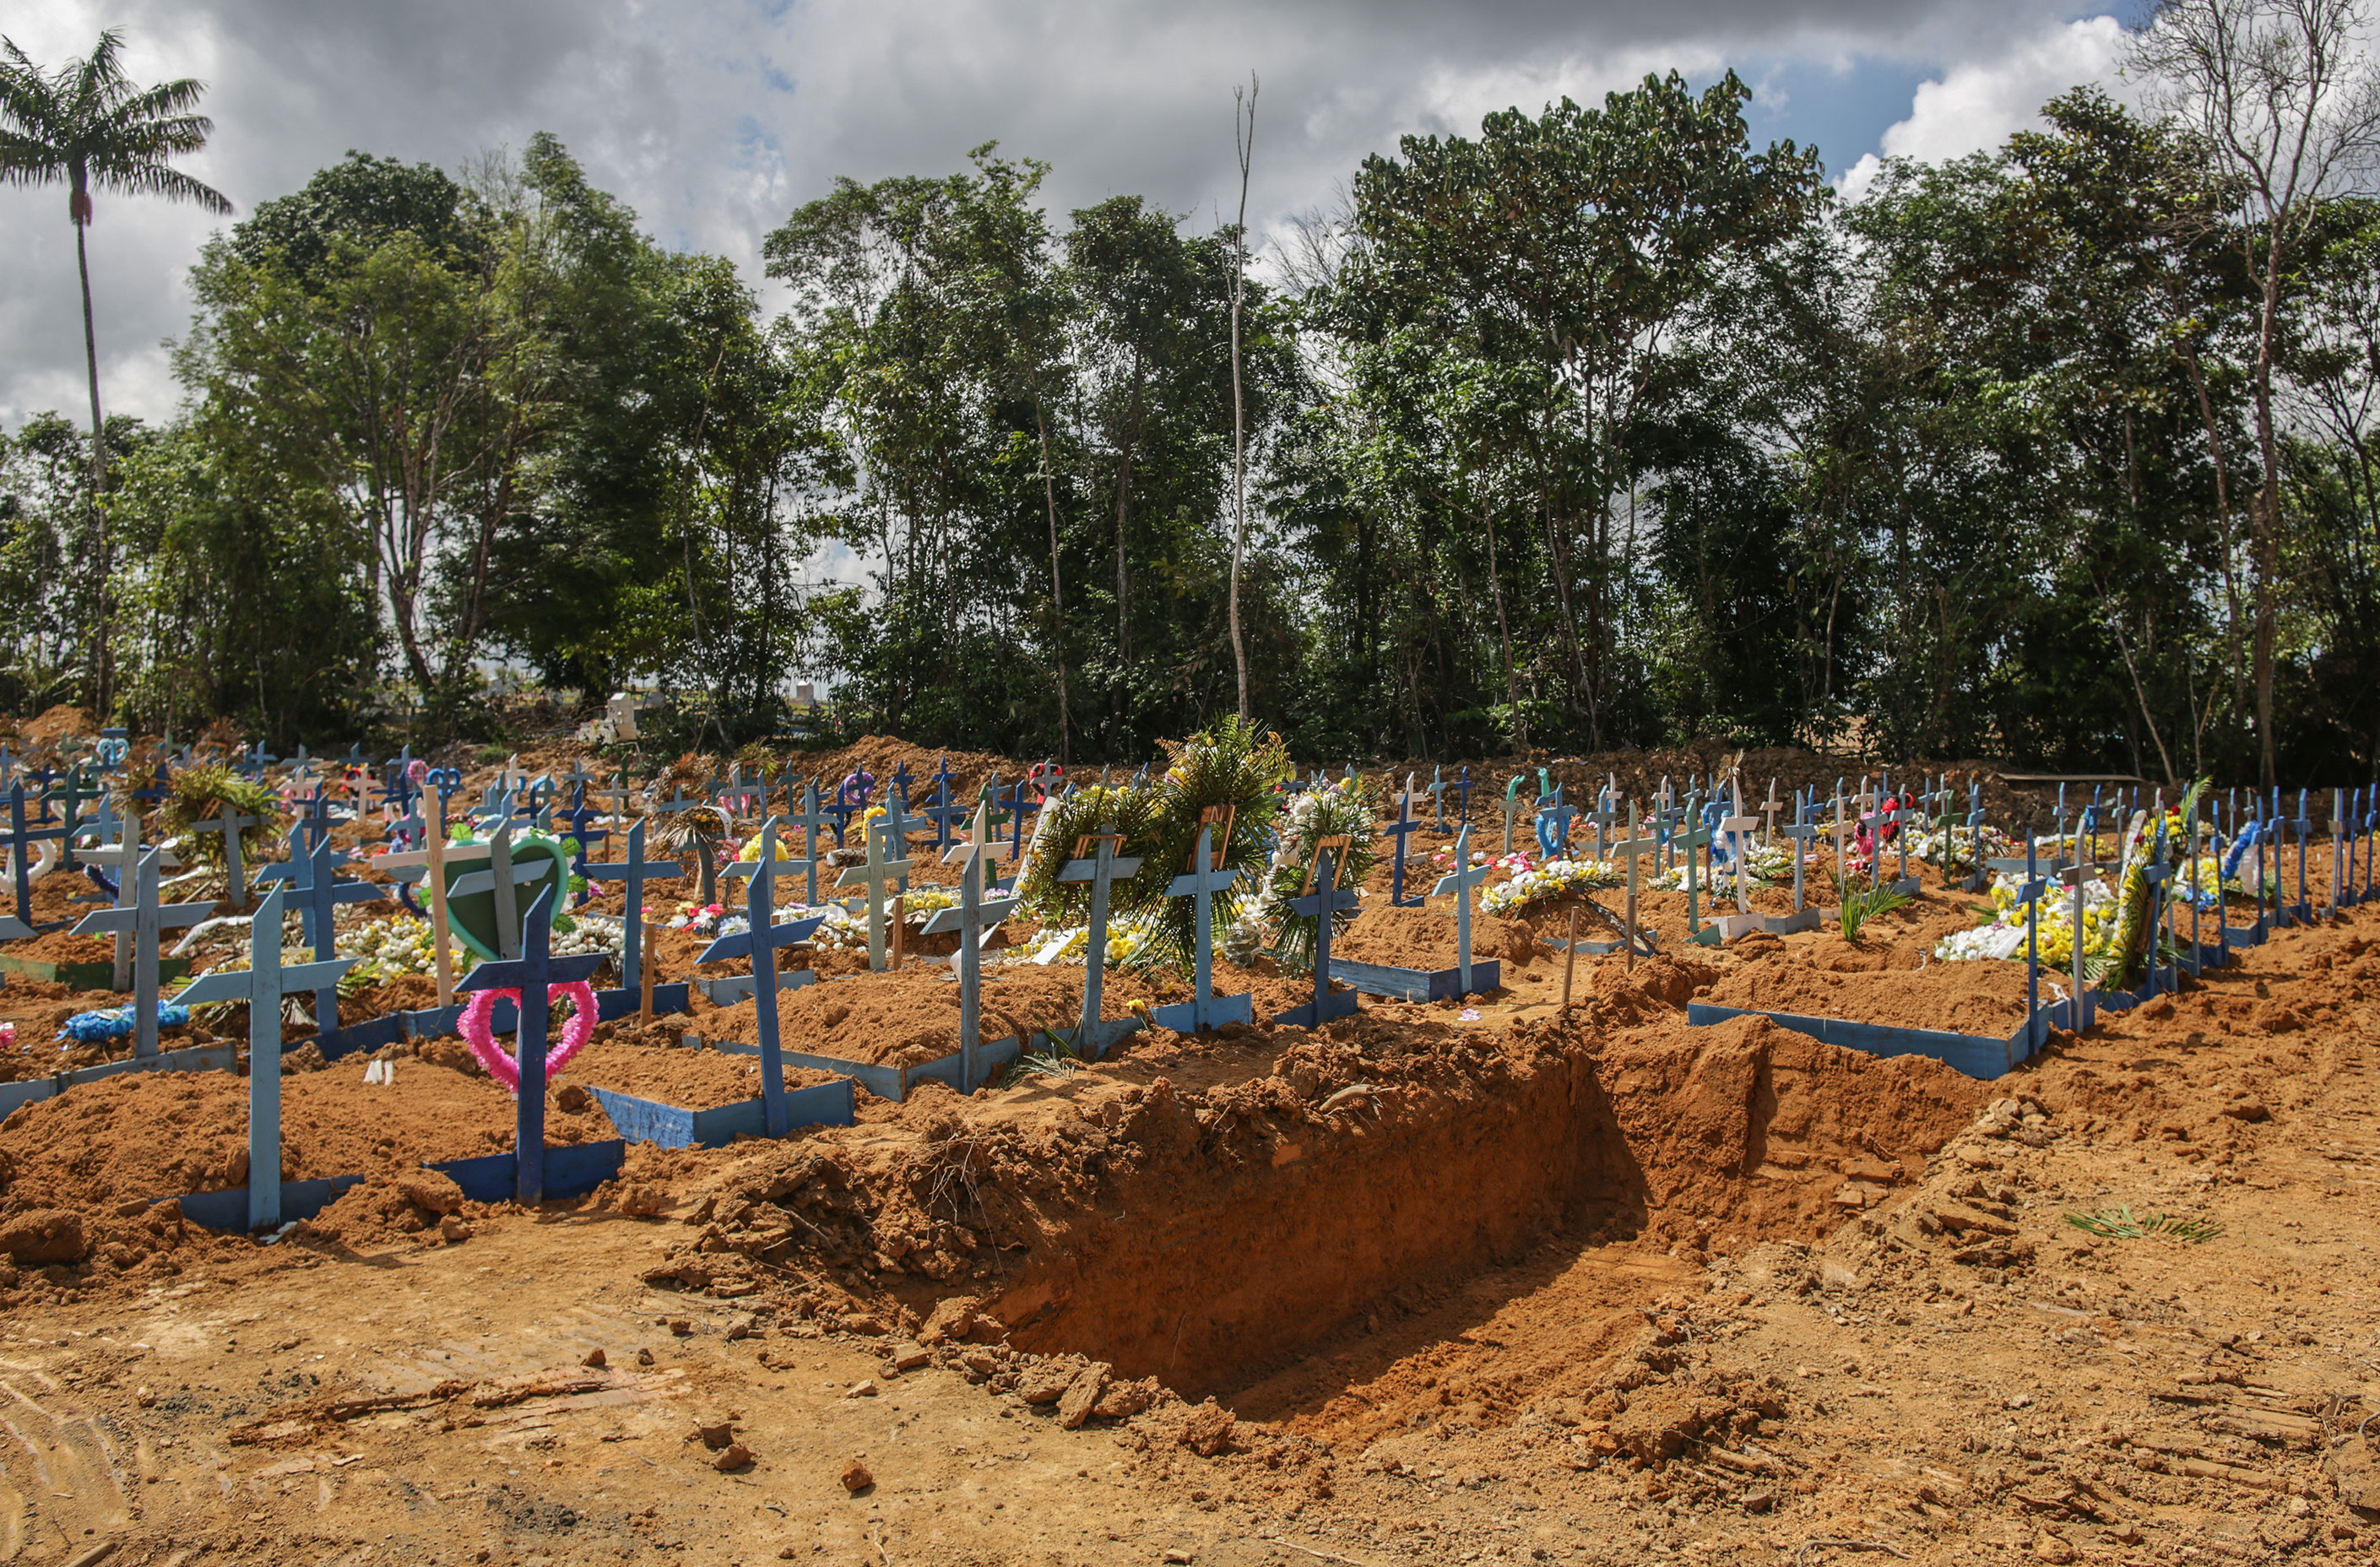 An open mass grave is seen at the Parque Tarumã cemetery on May 27 in Manaus, Brazil.